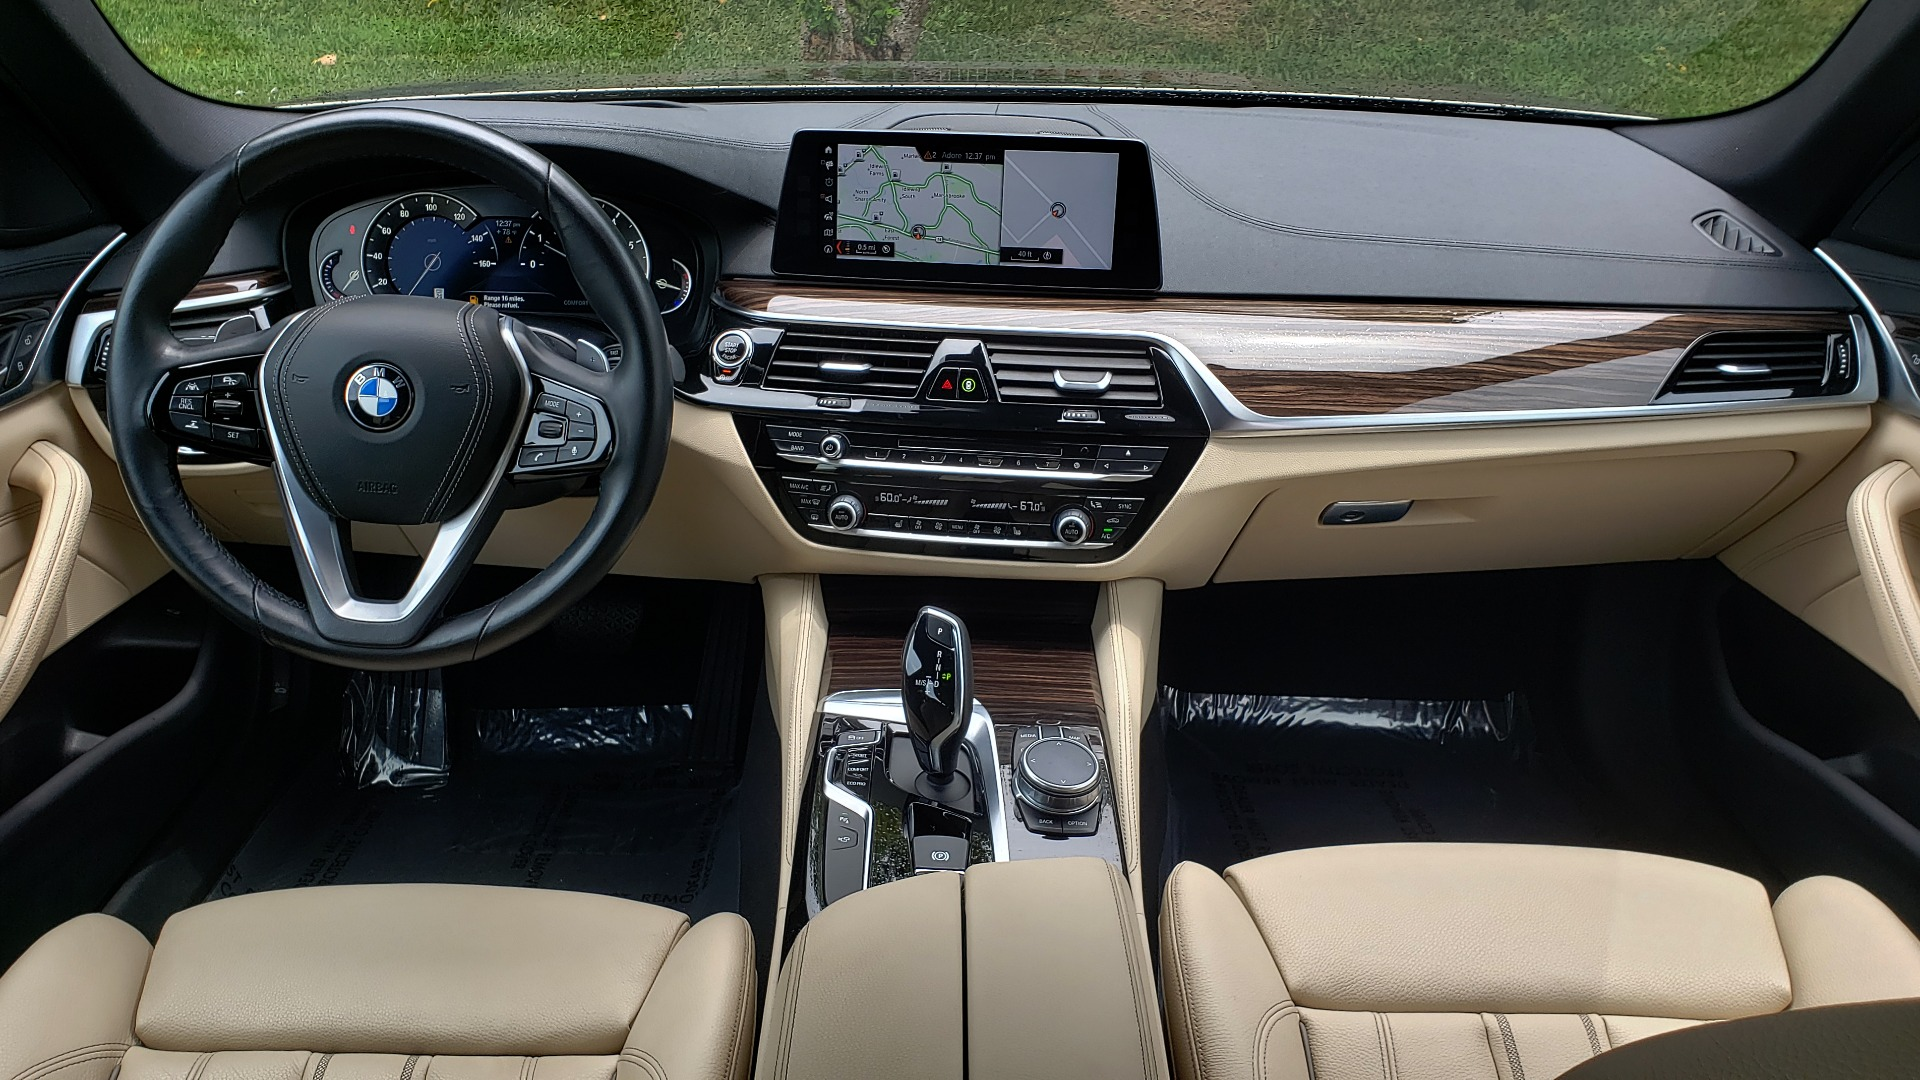 Used 2017 BMW 5 SERIES 530I PREMIUM / NAV / SUNROOF / DRVR ASST PLUS II / LUXURY for sale Sold at Formula Imports in Charlotte NC 28227 71